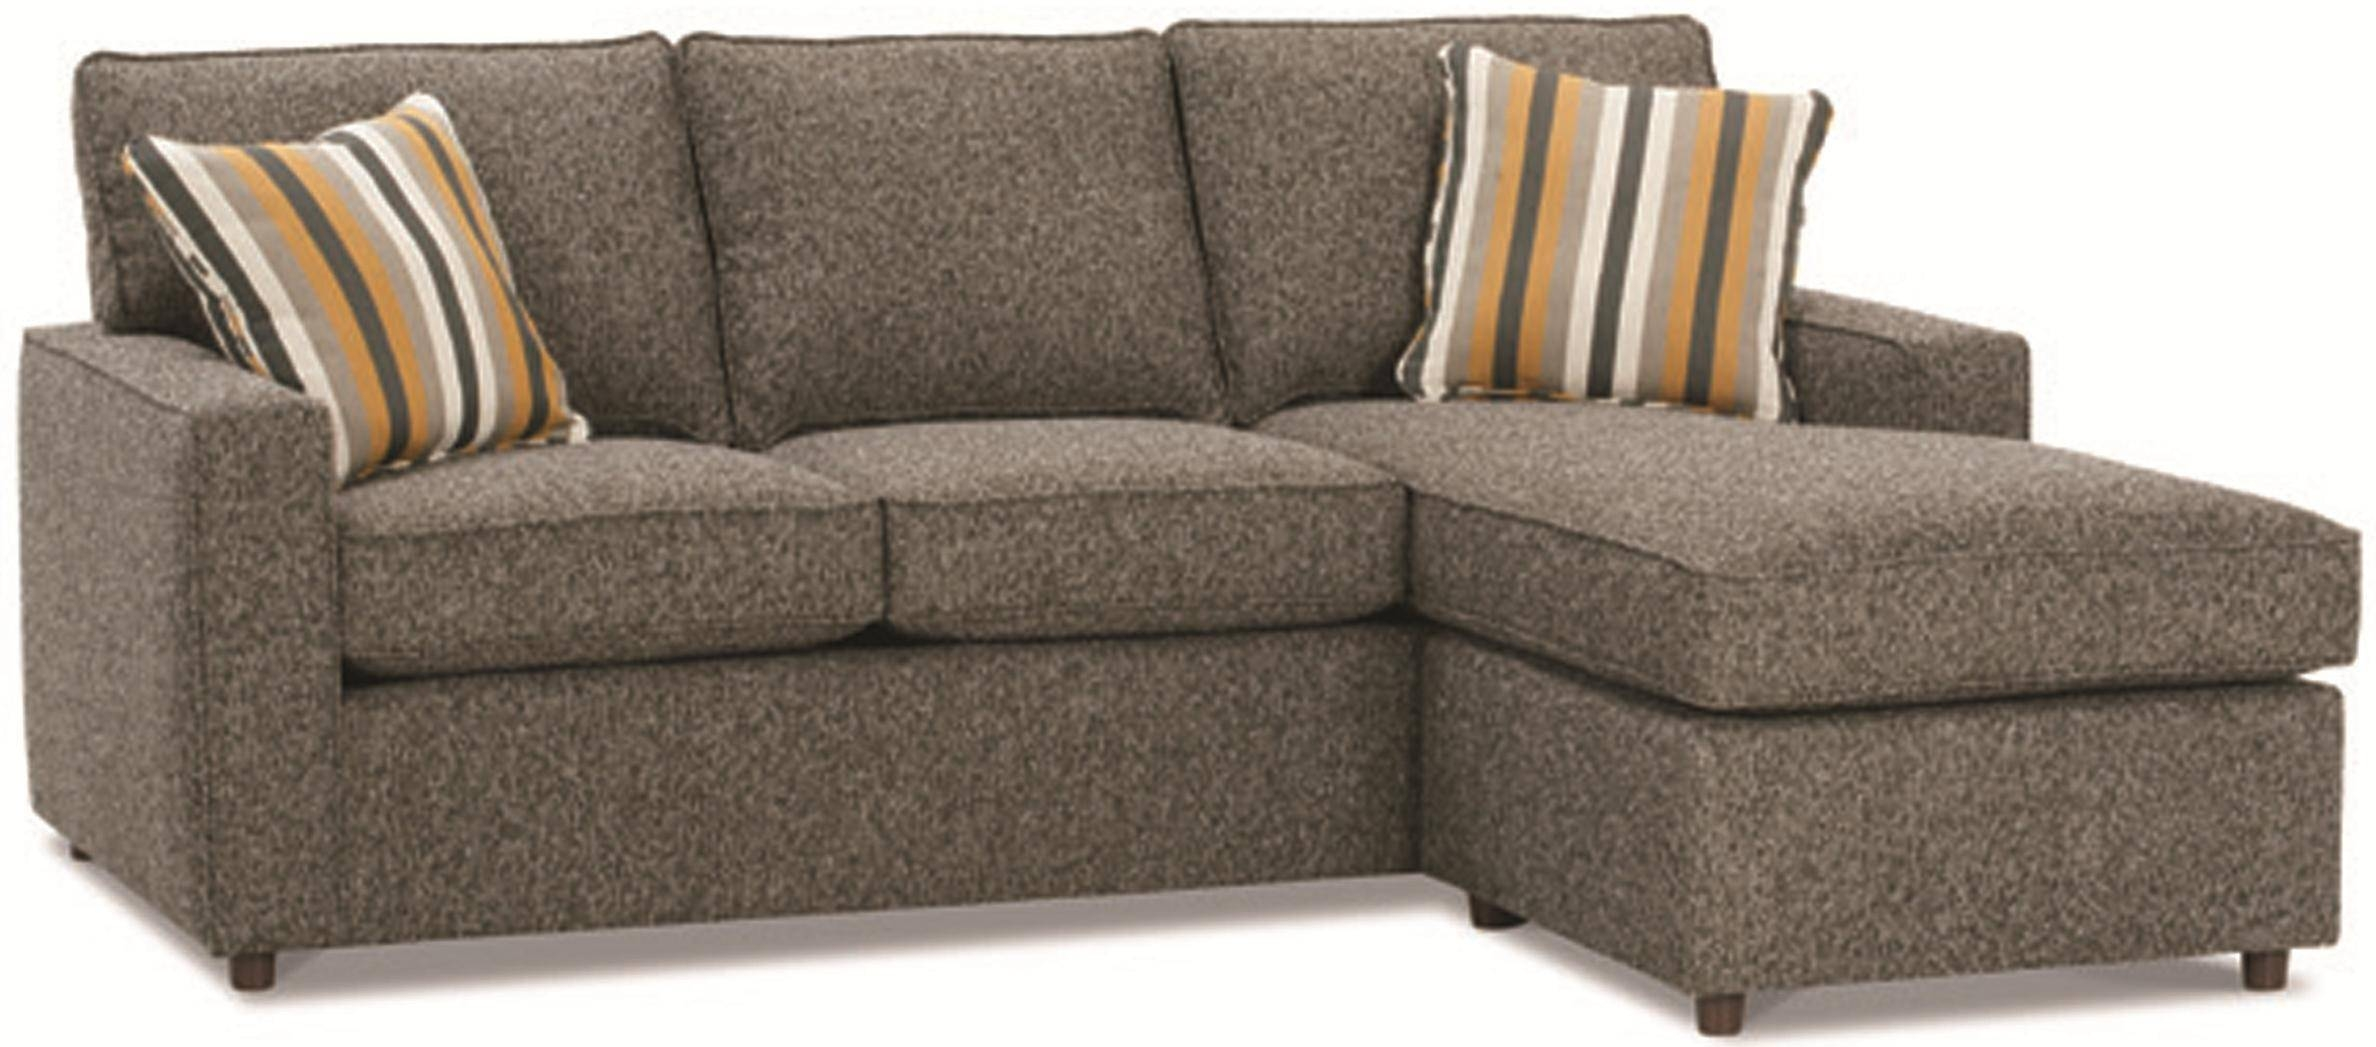 Sofa | Saugerties Furniture within Tight Back Sectional Sofas (Image 8 of 15)